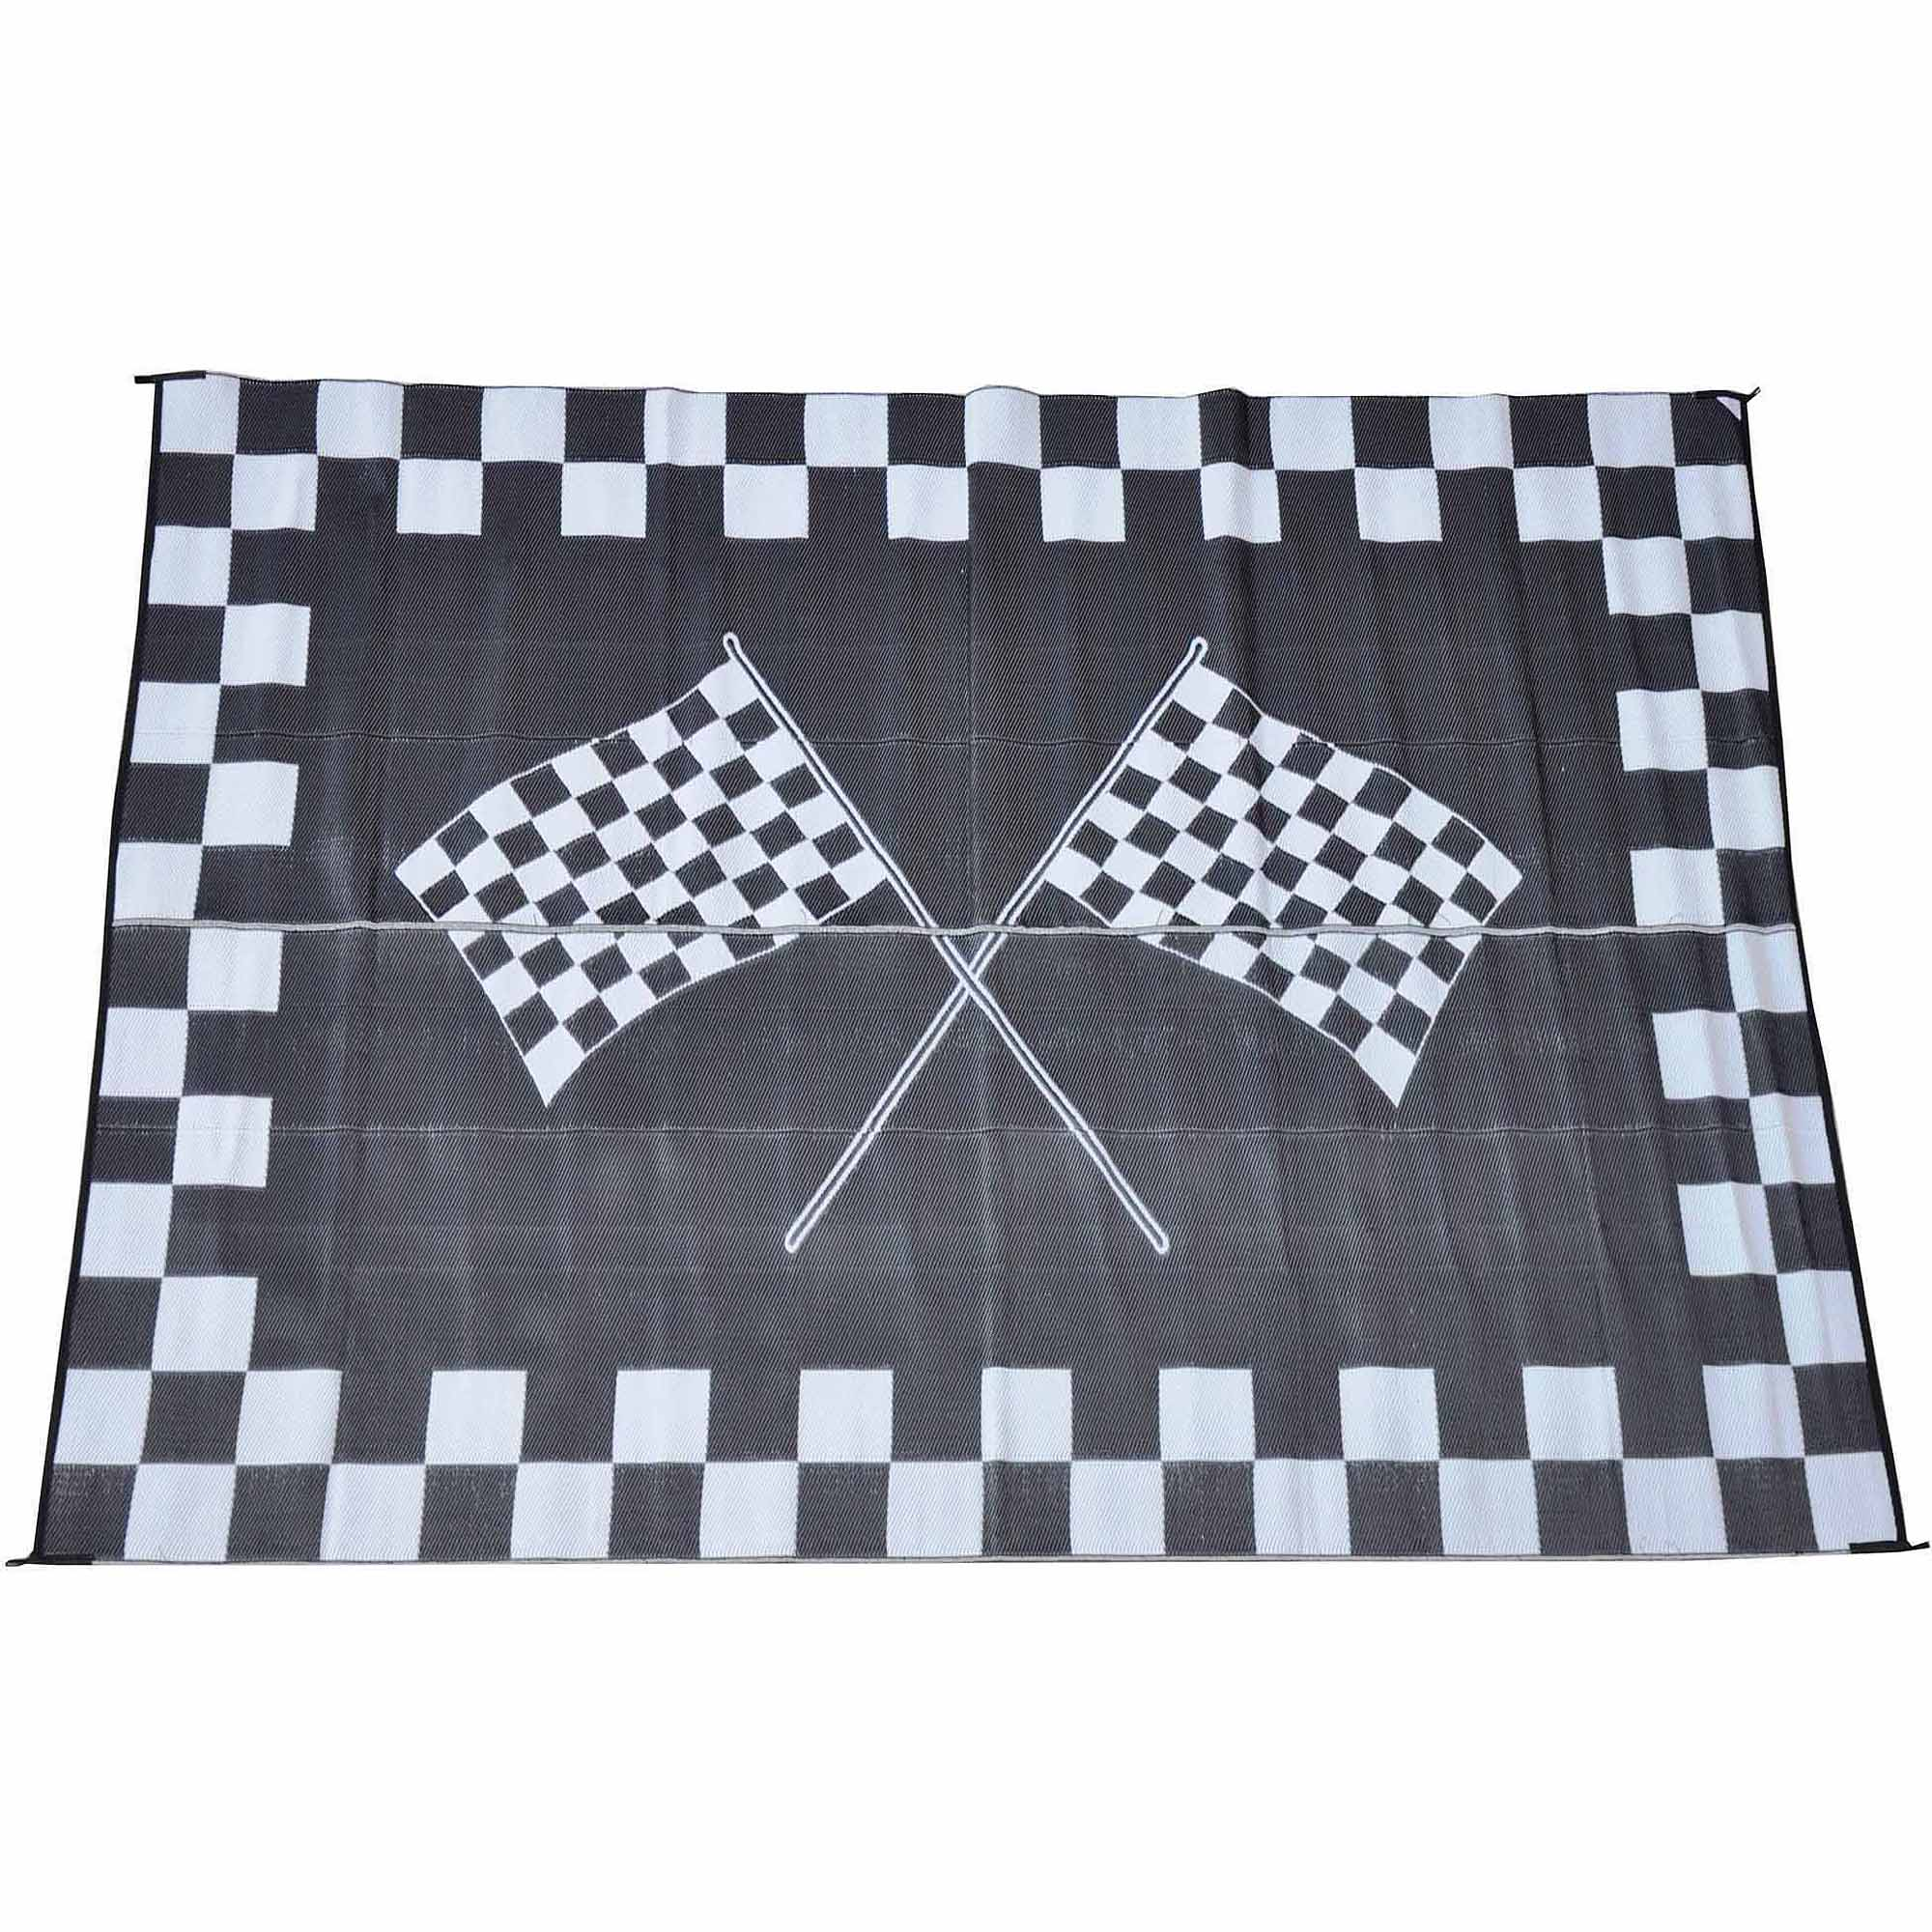 Patio Mats Racing Flag Patio Mat